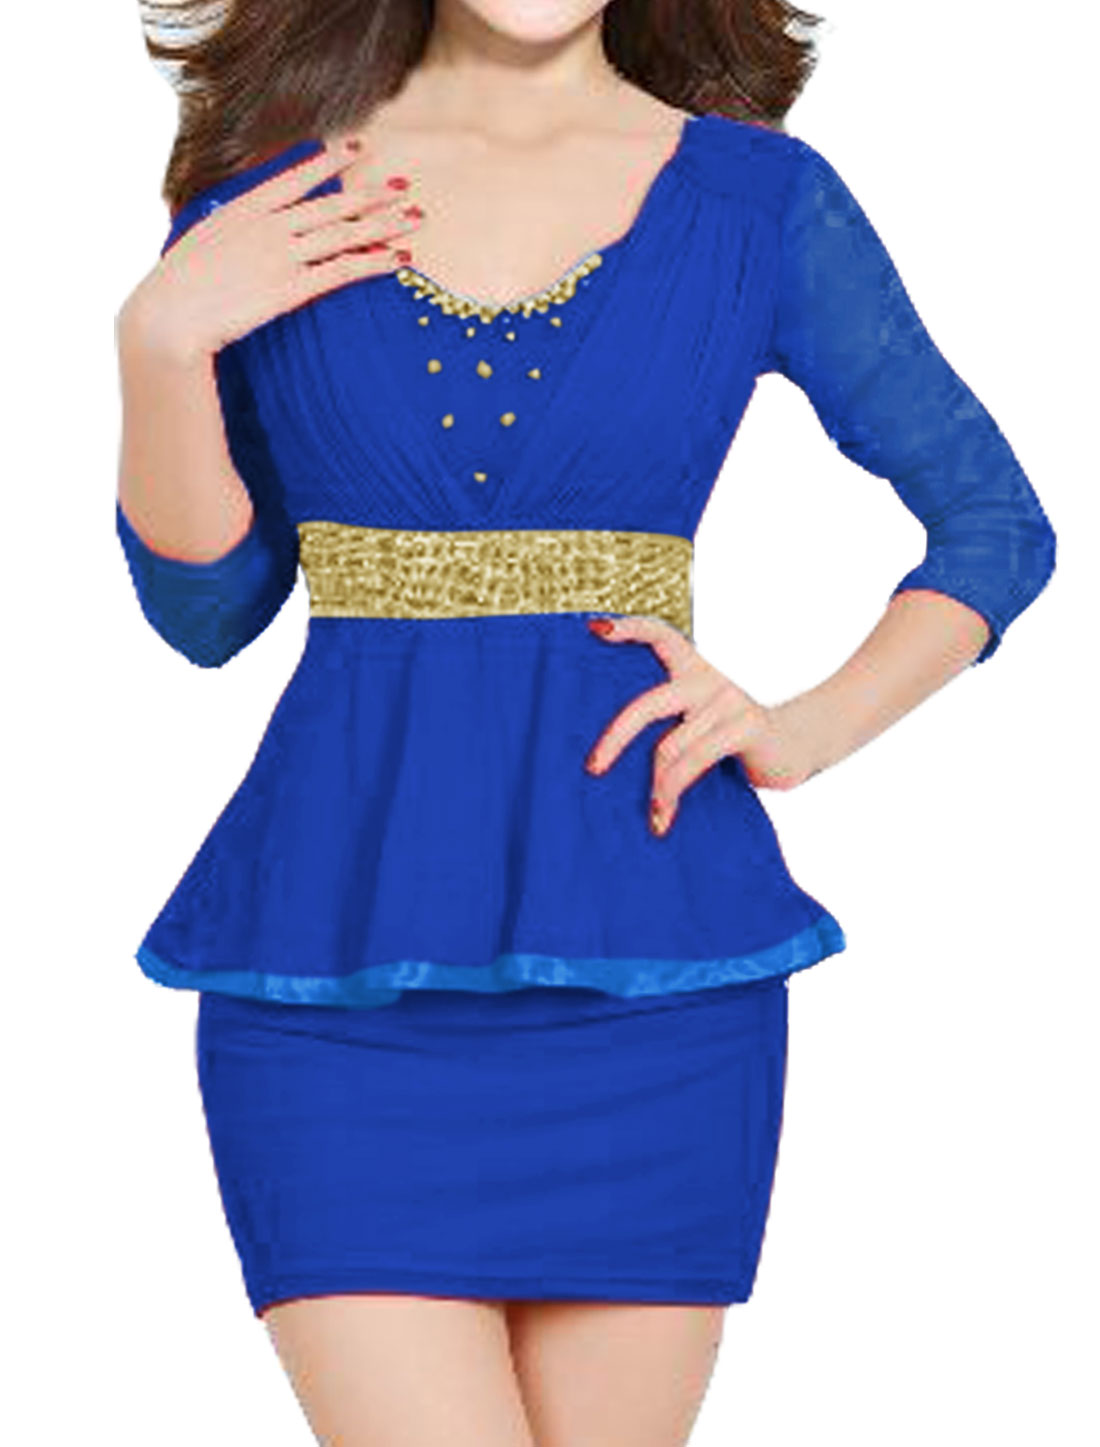 Women Beaded Rhinestone Decor Mesh Peplum Dress Blue M